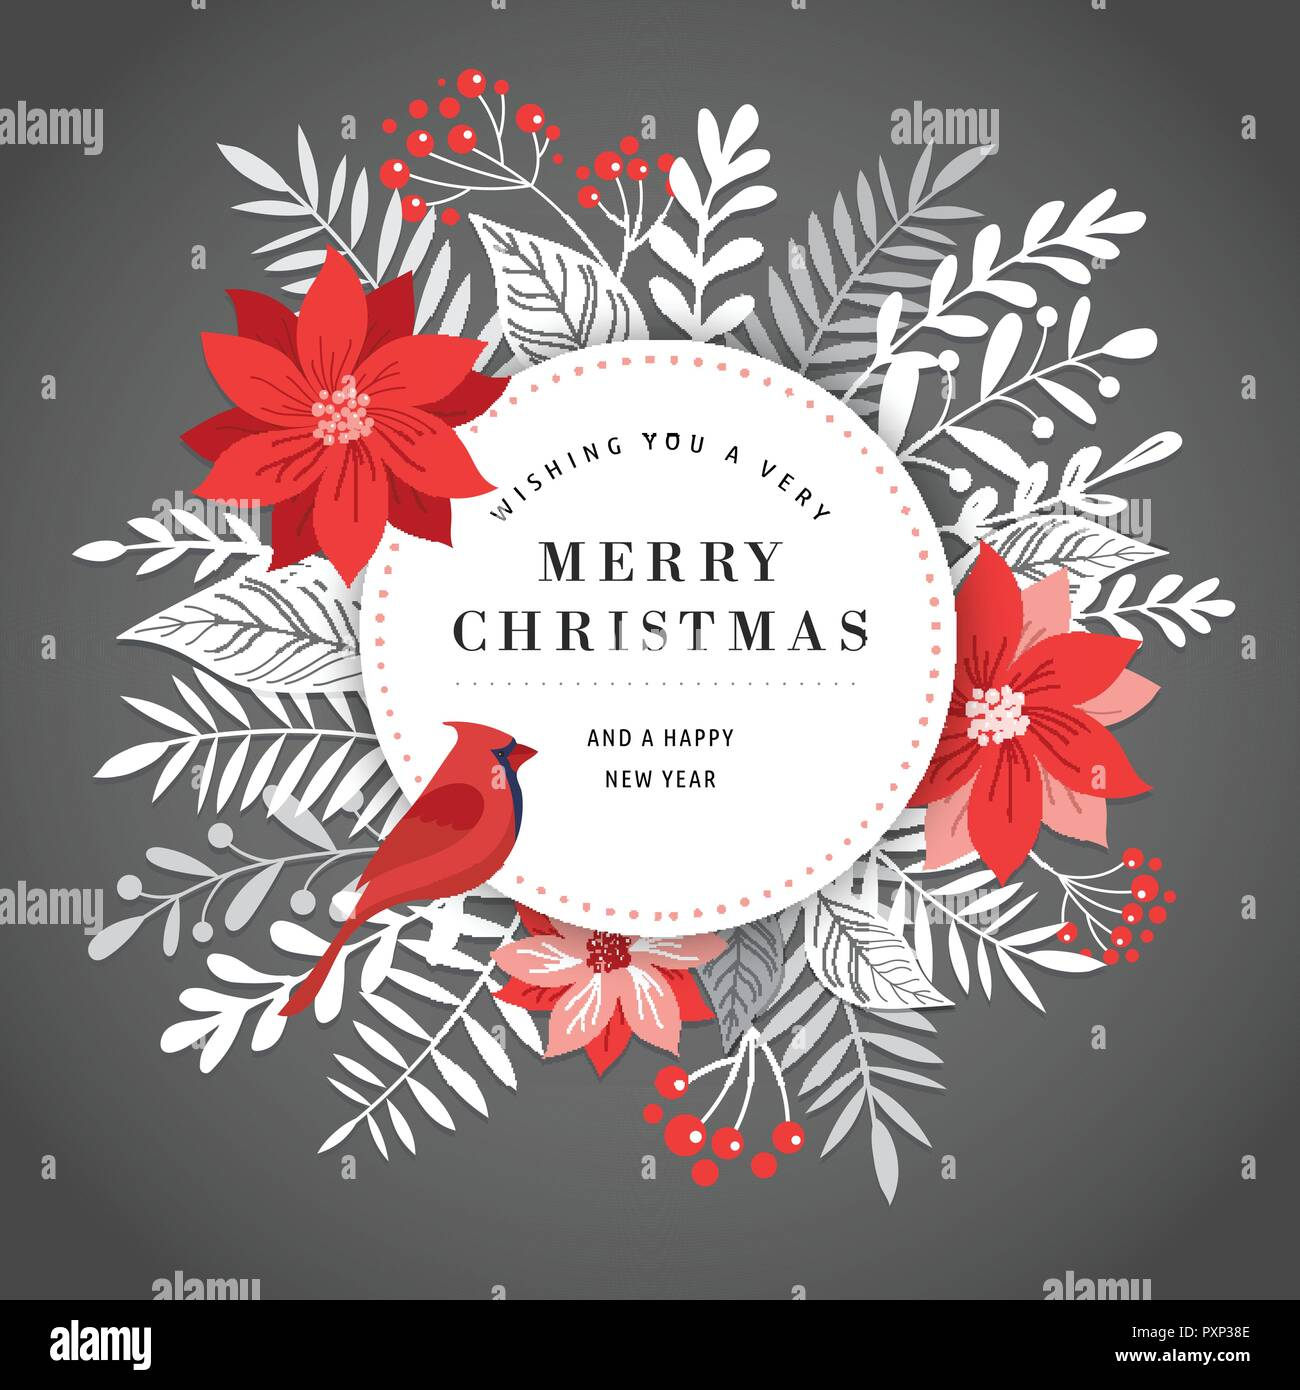 merry christmas greeting card banner and background in elegant modern and classic style with leaves flowers and bird